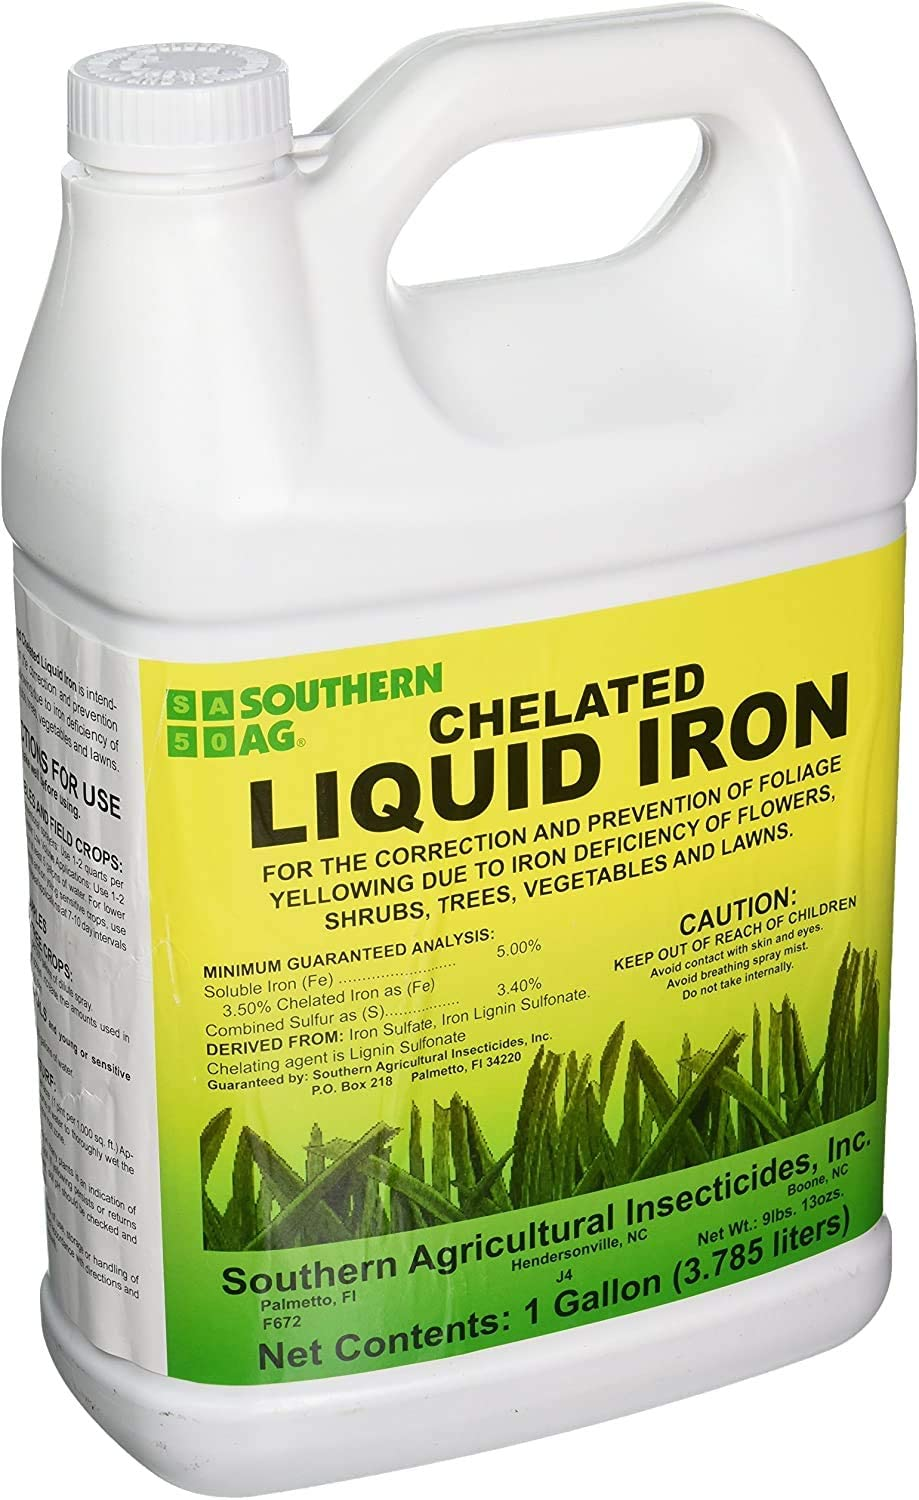 Southern Ag Chelated Liquid Fertilizer for St Augustine Grass